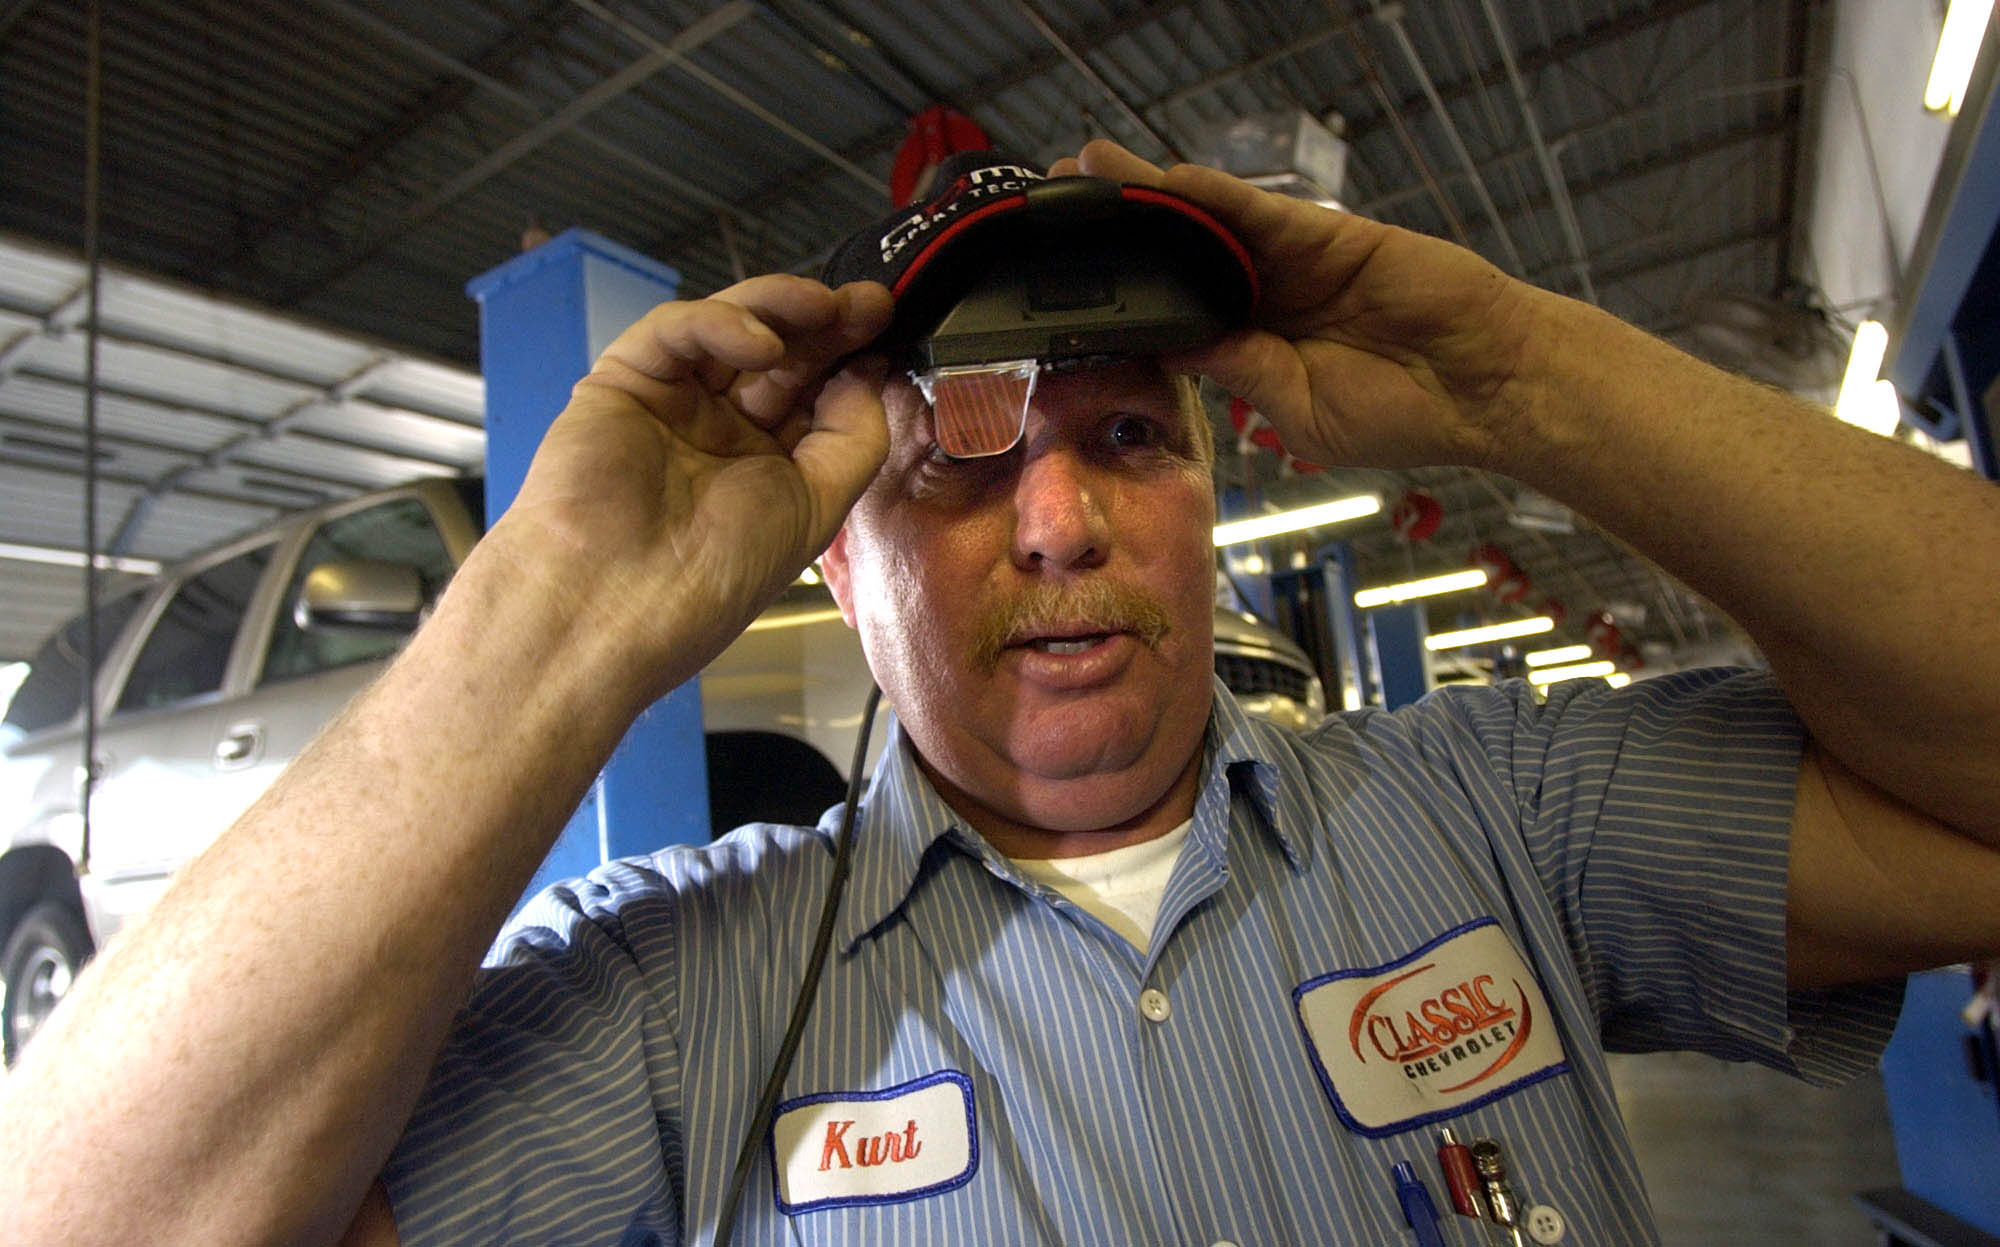 ** ADVANCE FOR MONDAY SEPT. 20 ** Auto mechanic Kurt Ward demonstrates a wearable computer over his right eye that is used to read on line repair manuals in Grapevine, Texas, Friday, Sept. 3, 2004. The wearable computer includes a wireless Internet connection, that allows him to read from manufacturers' online auto-repair manuals. (AP Photo/L.M. Otero)